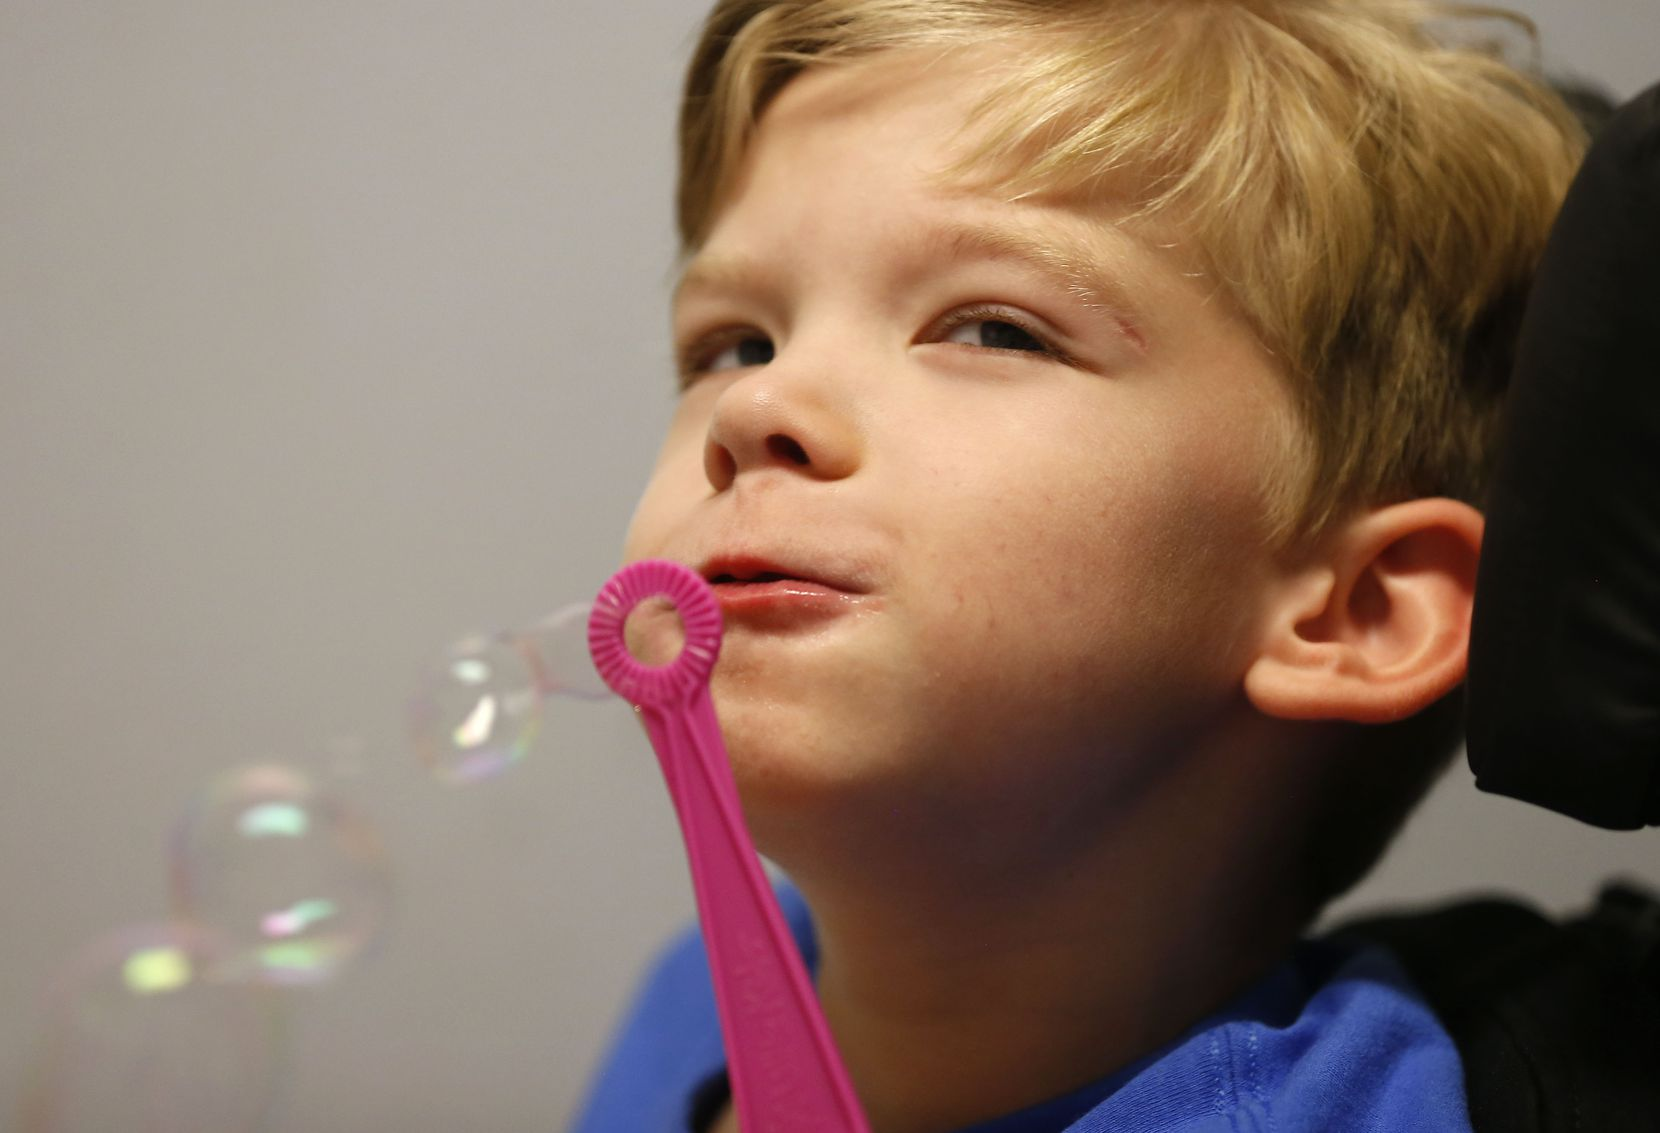 Will blows bubbles at Keystone Pediatric Therapy in McKinney, Texas, Wednesday, June 20, 2018.